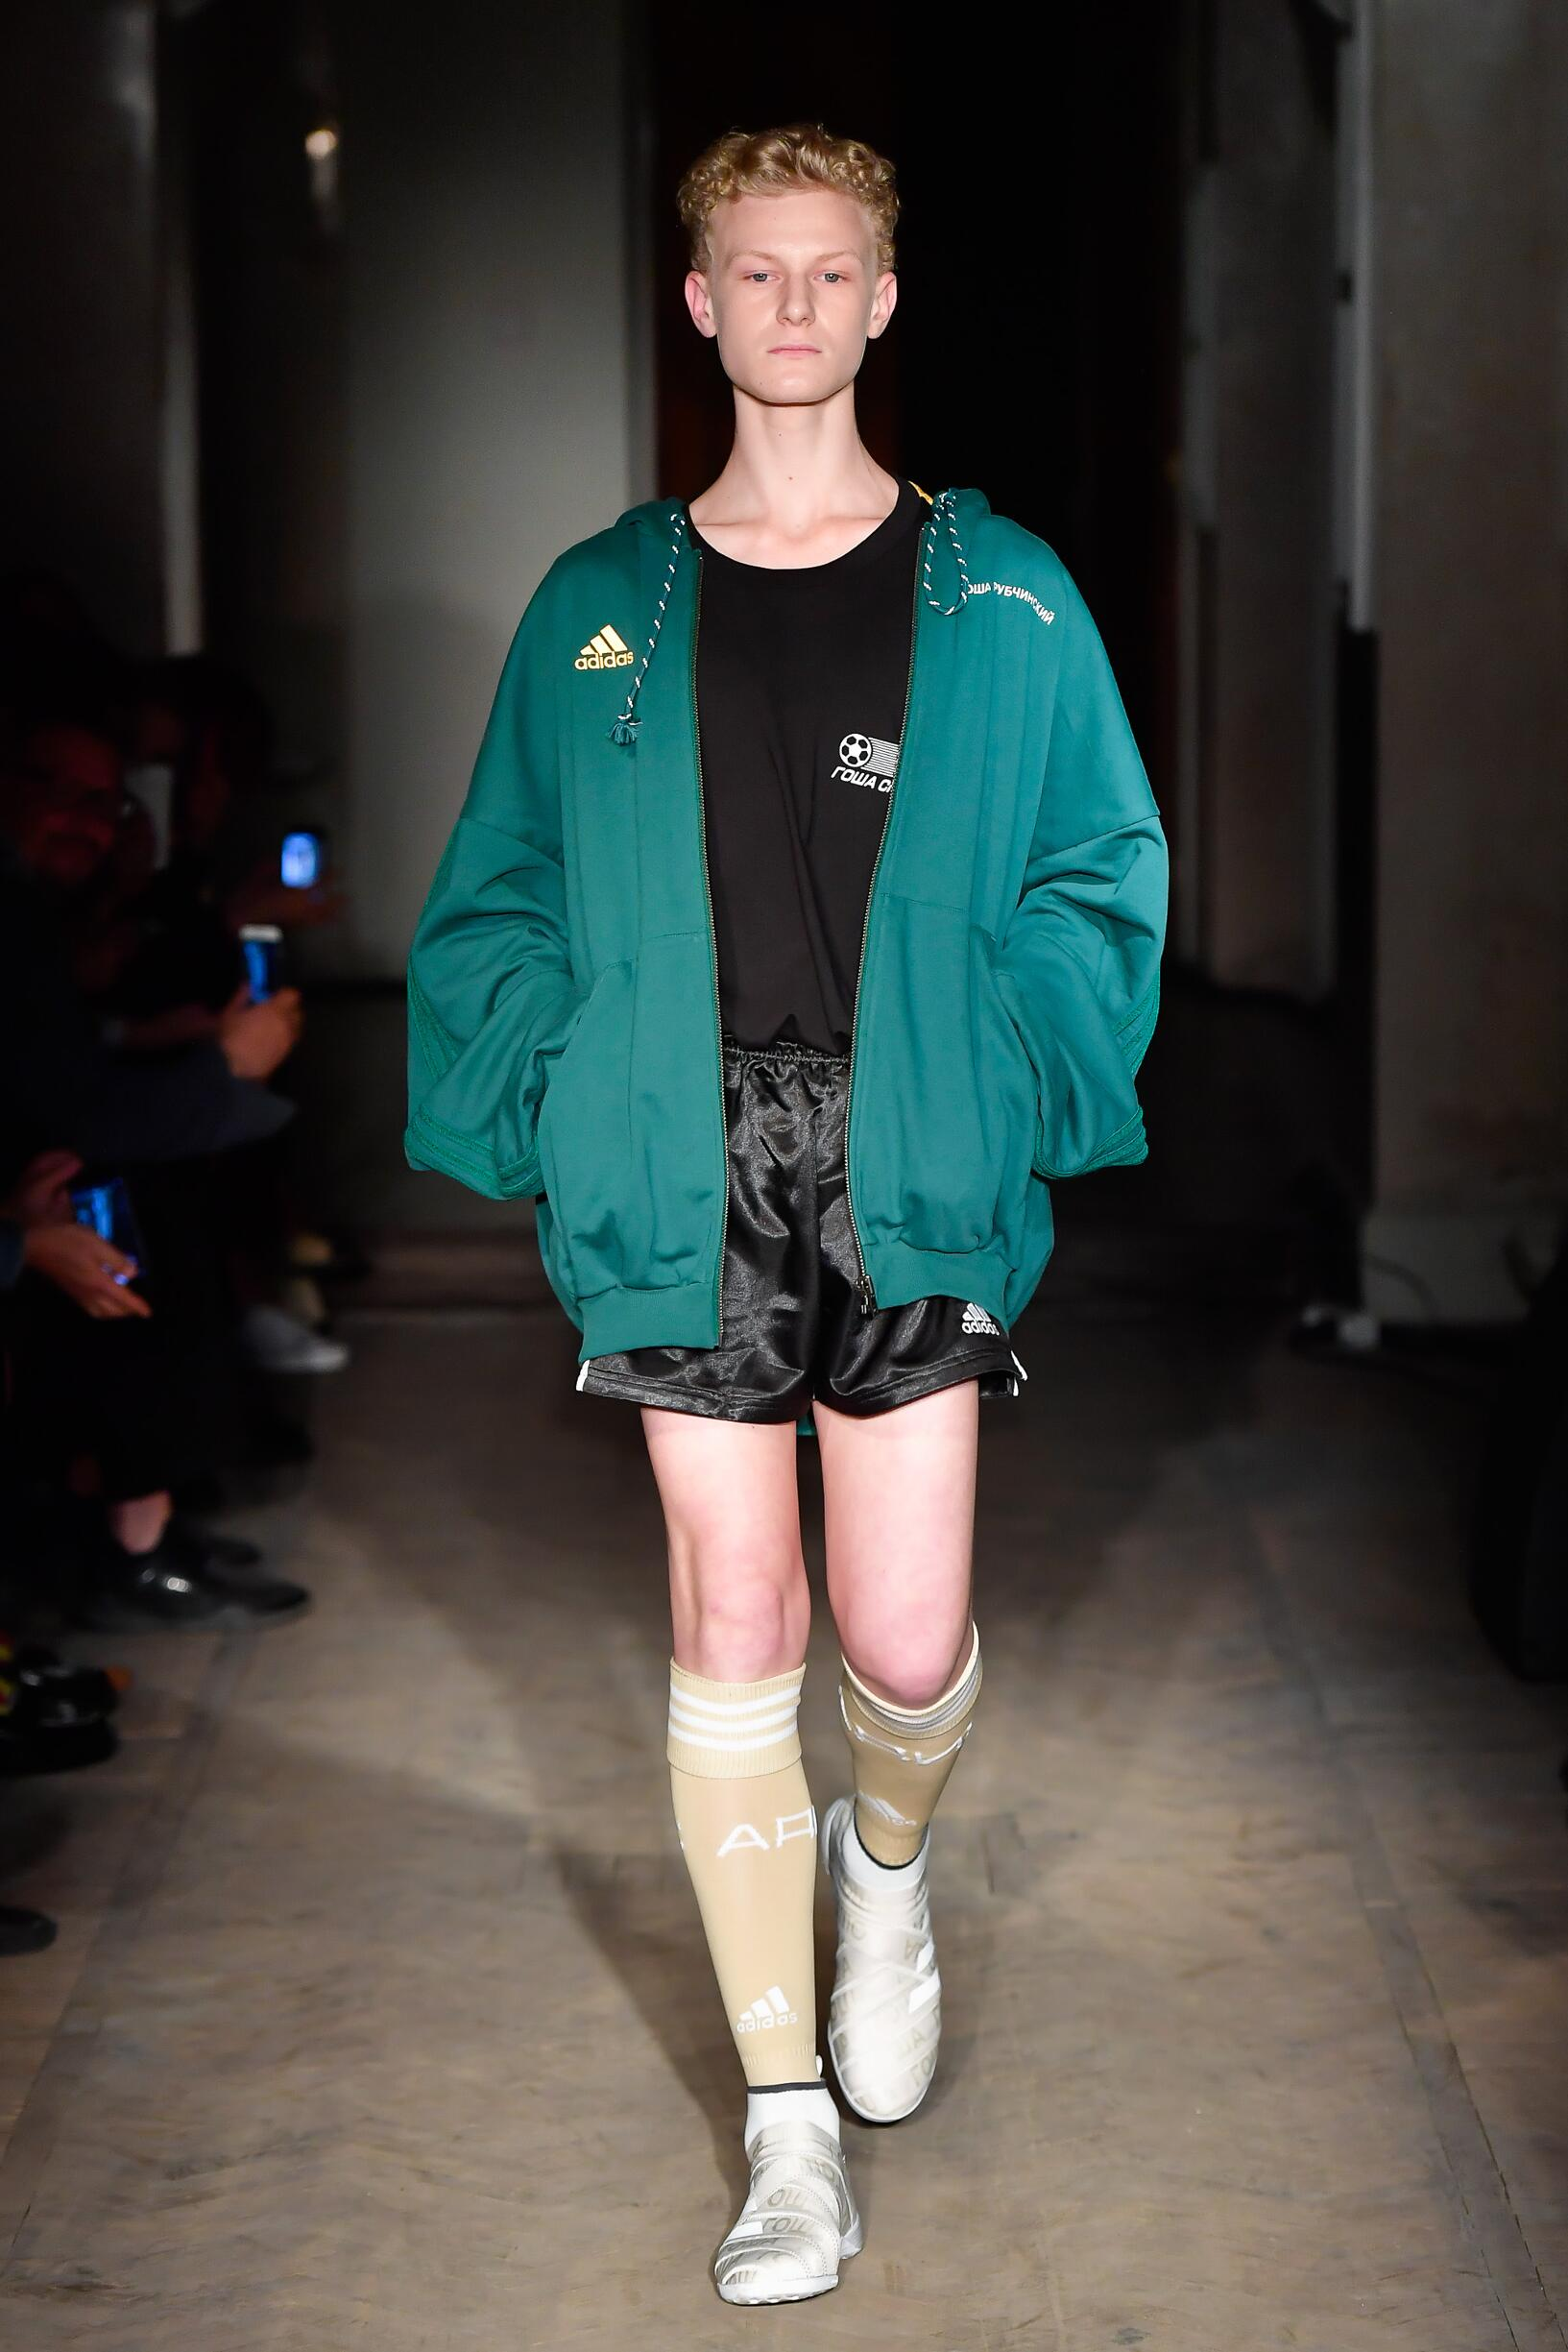 Man Model Fashion Show Gosha Rubchinskiy